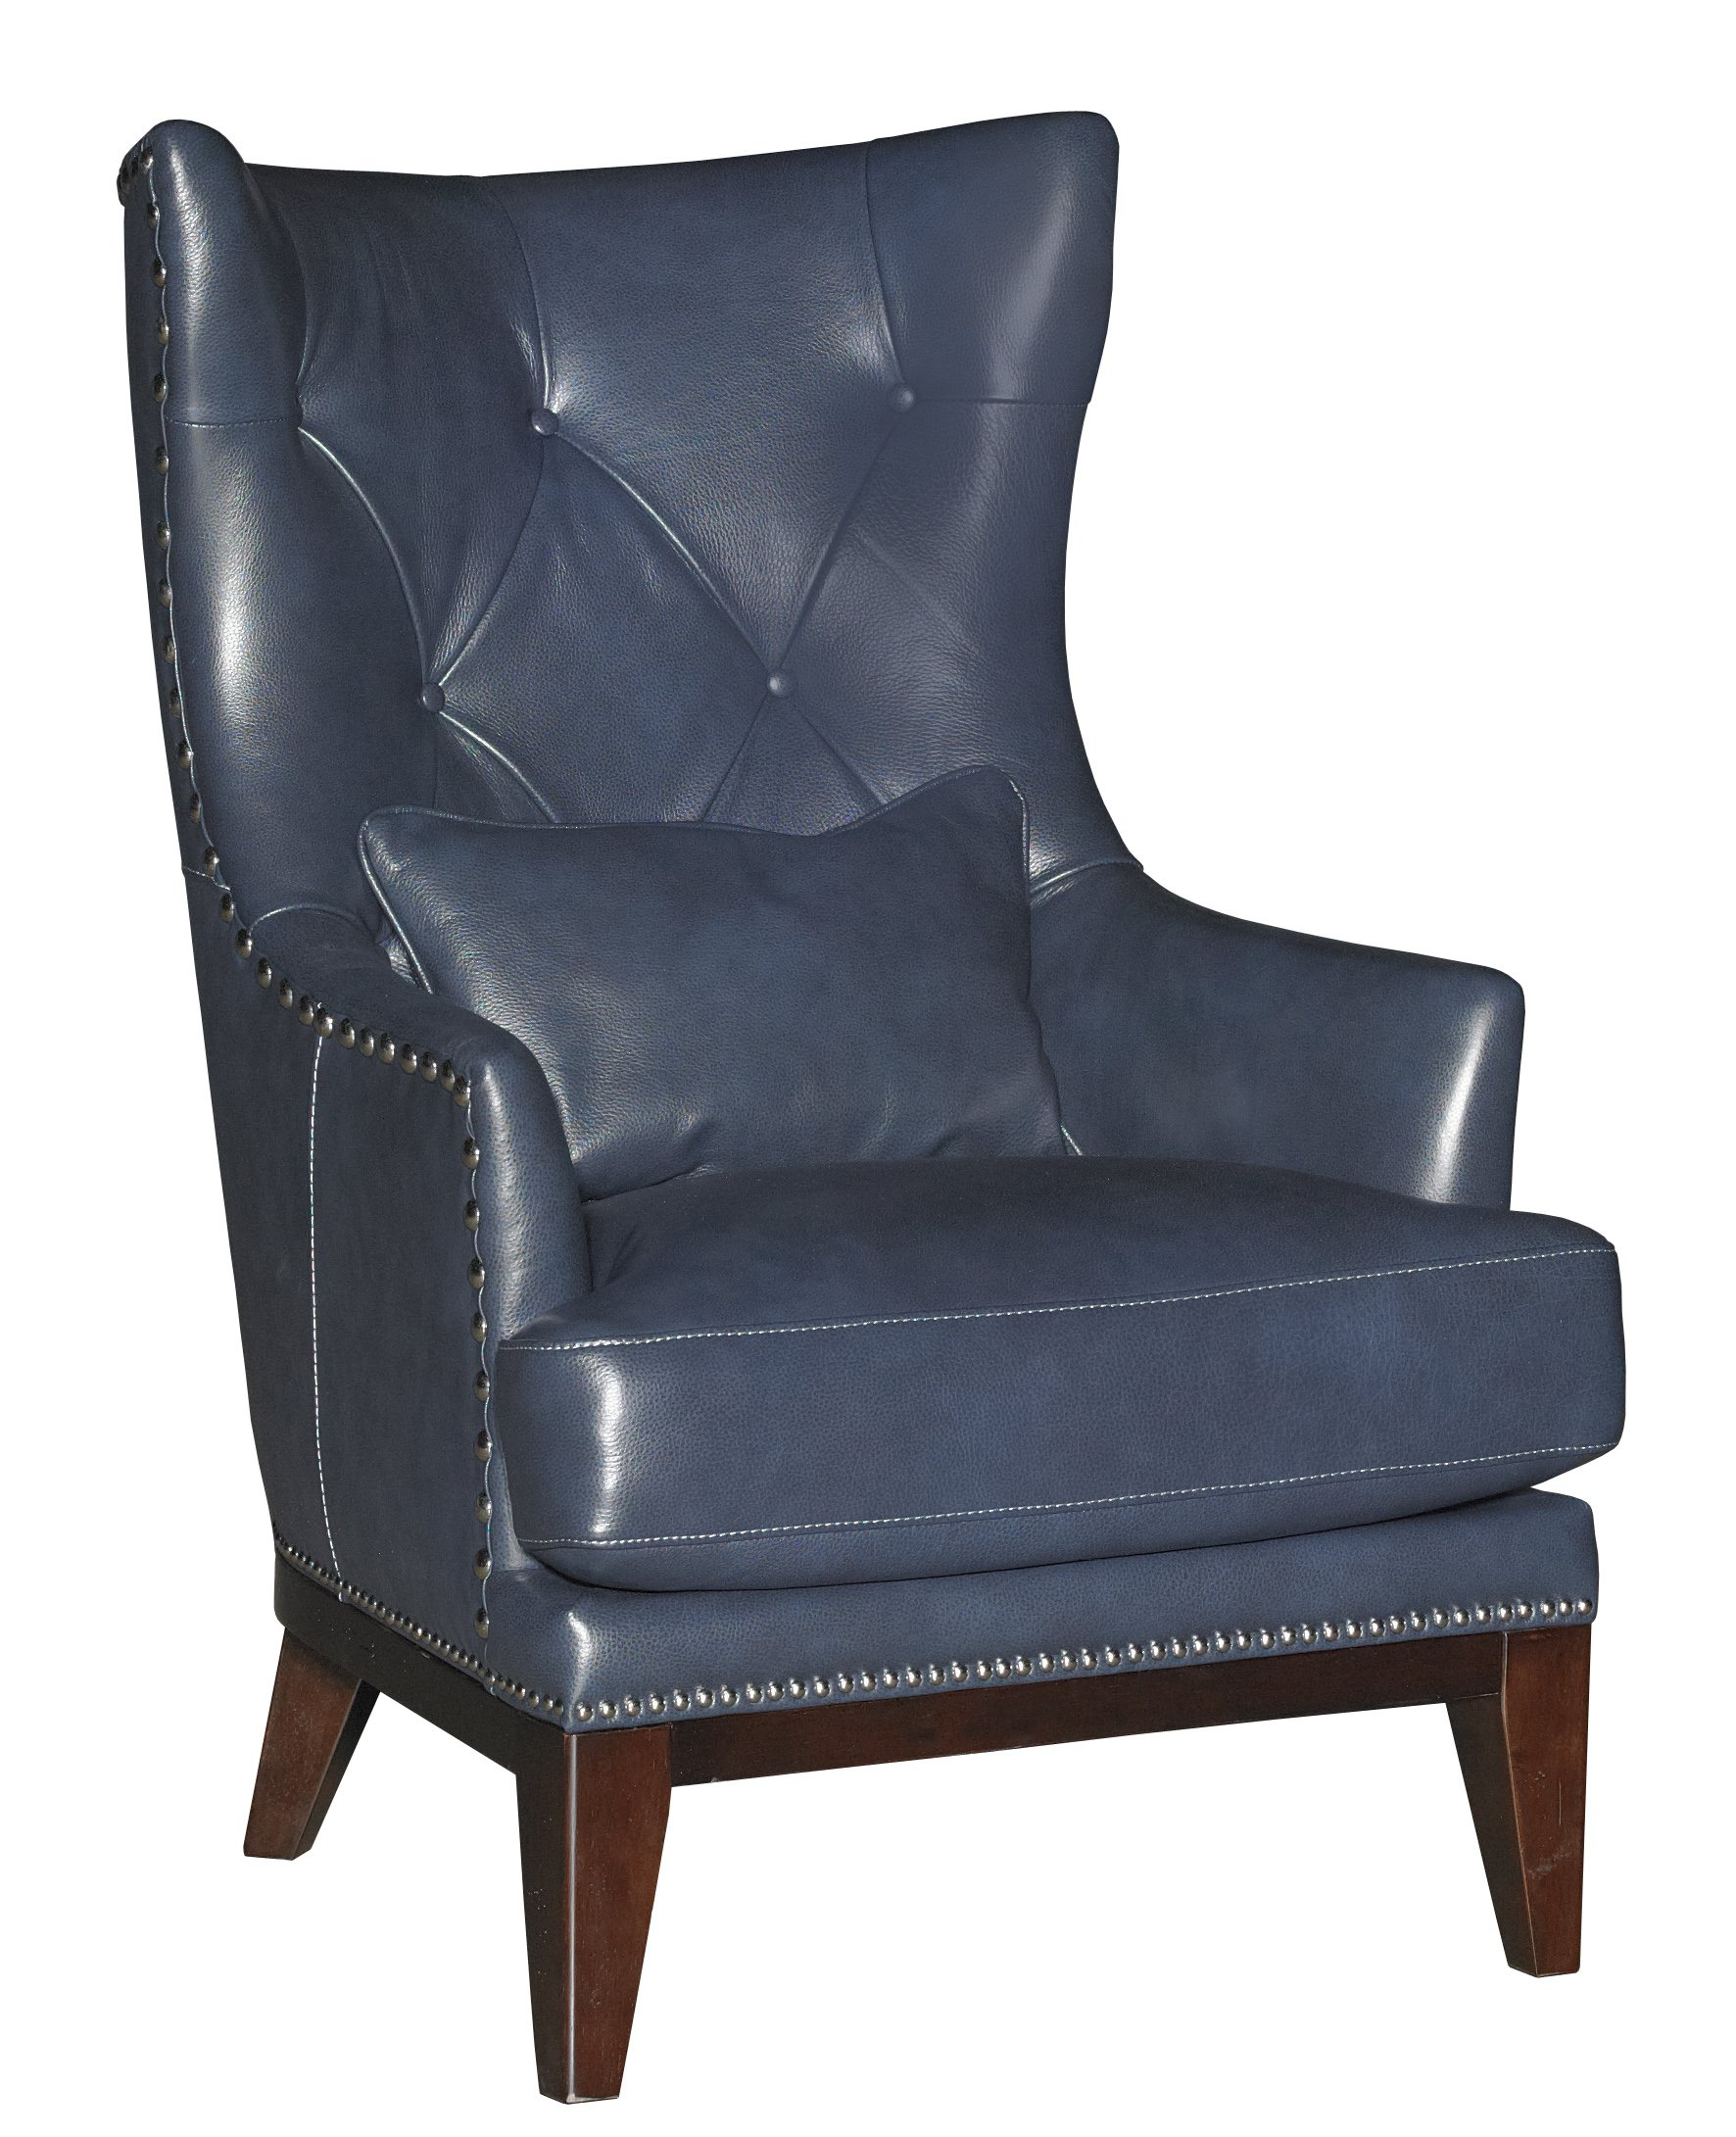 Blue Accent Chair With Arms Cobalt Blue Leather Match Accent Chair And Ottoman